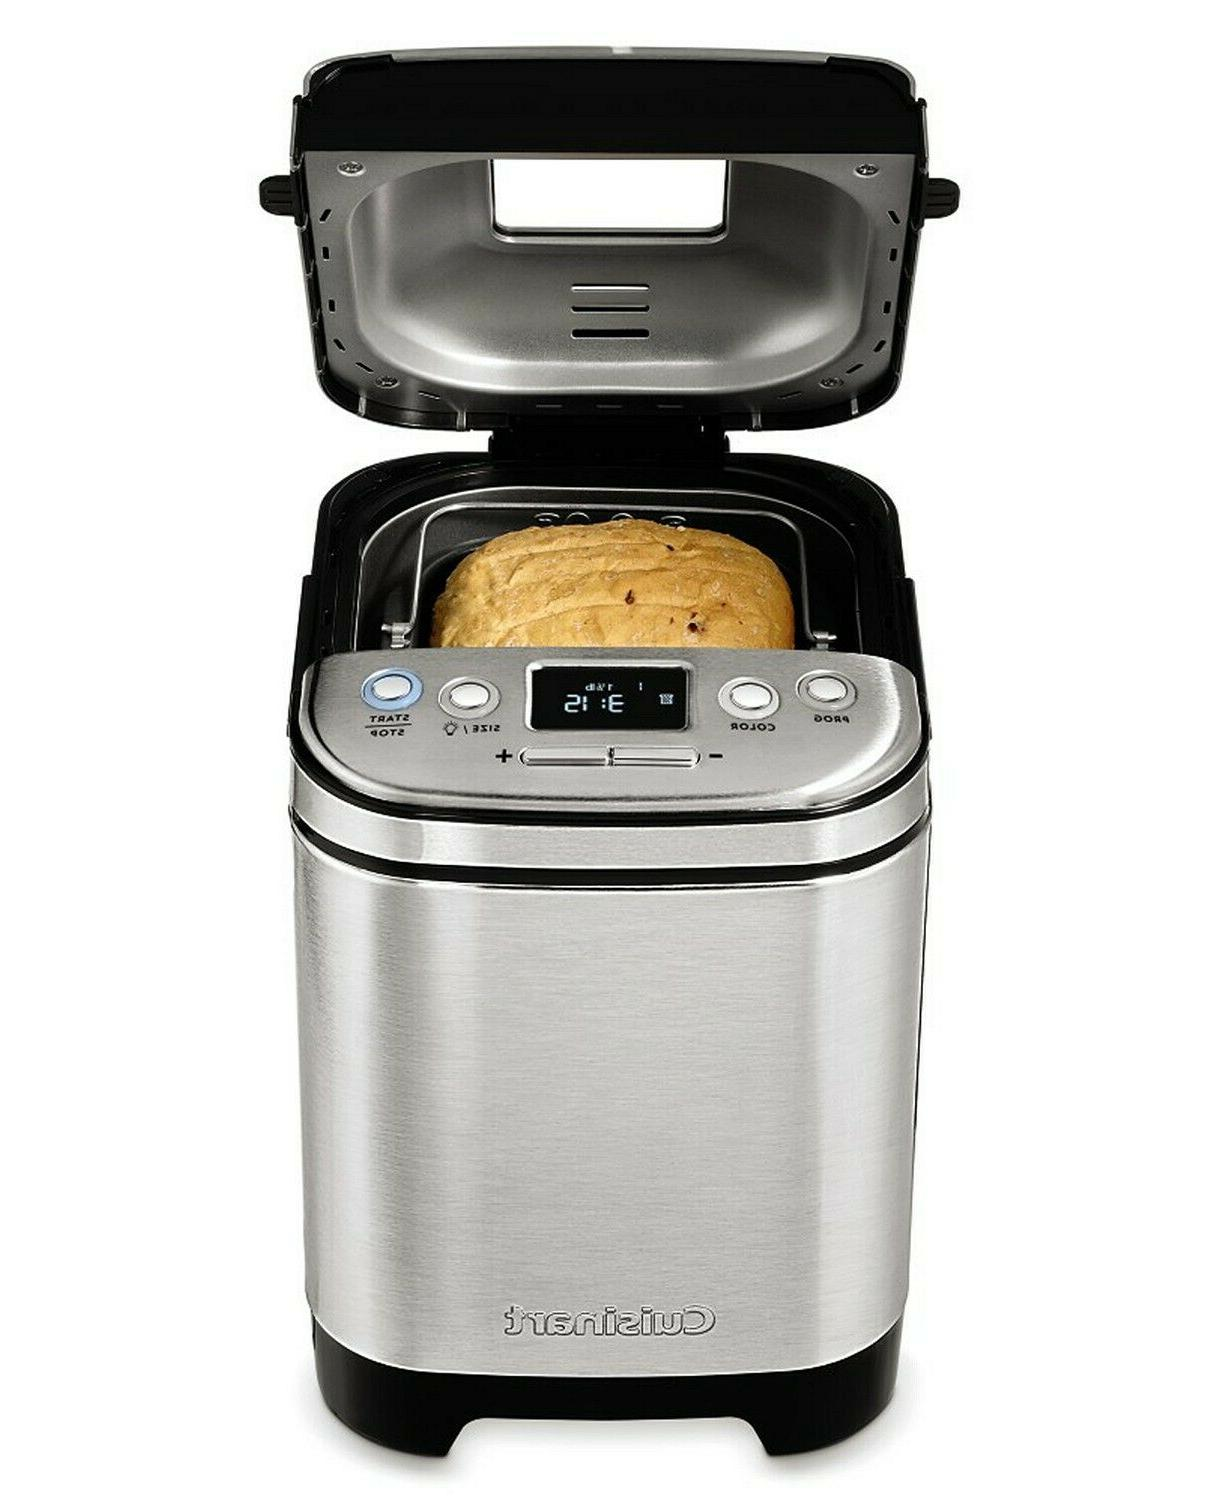 2-Pound Compact Automatic Bread Maker READY TO